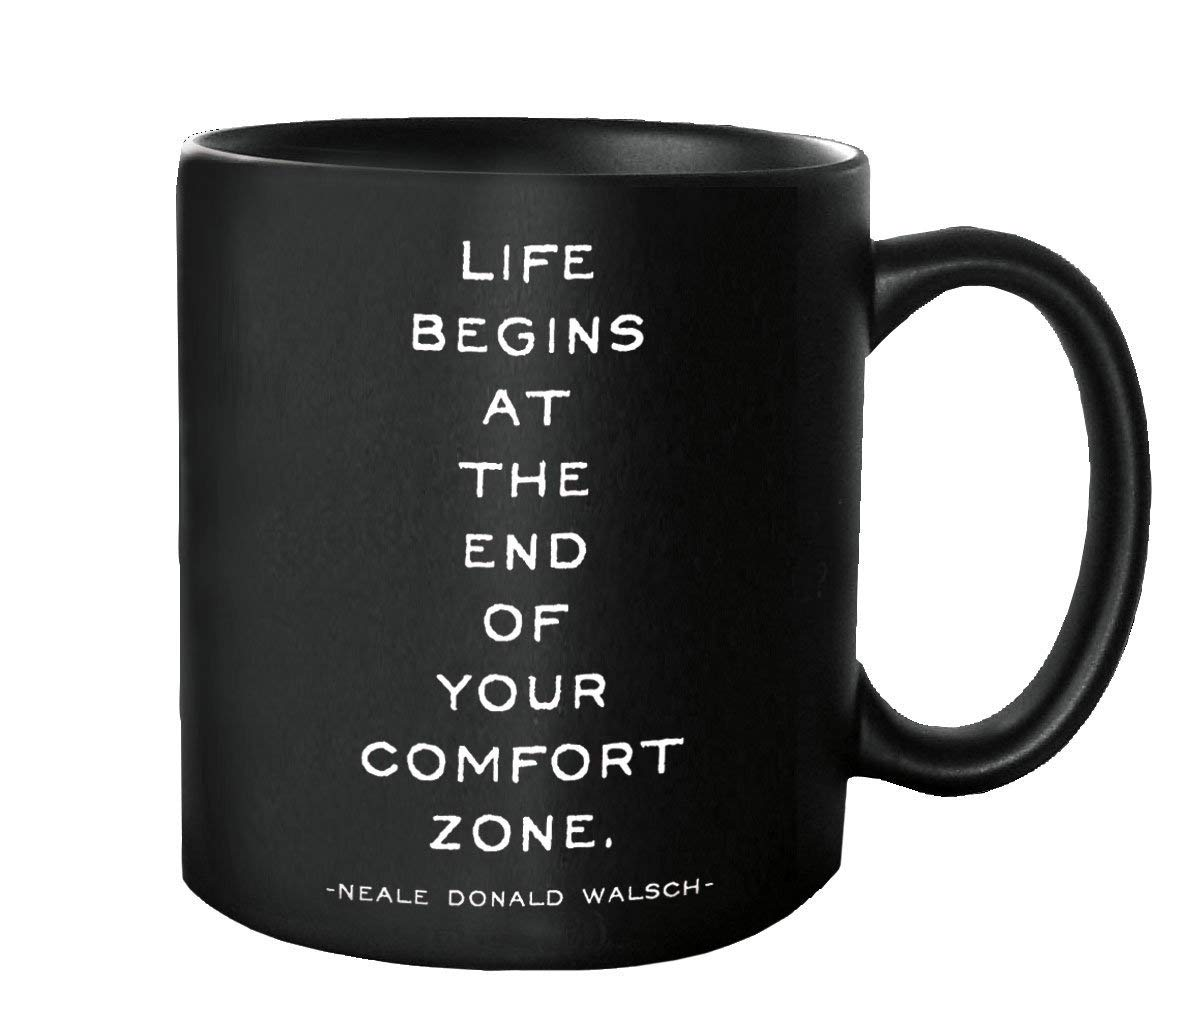 Quotable Life Begins Quotable Mug Quotes Kitchen Home MUG-G226-QUOTE